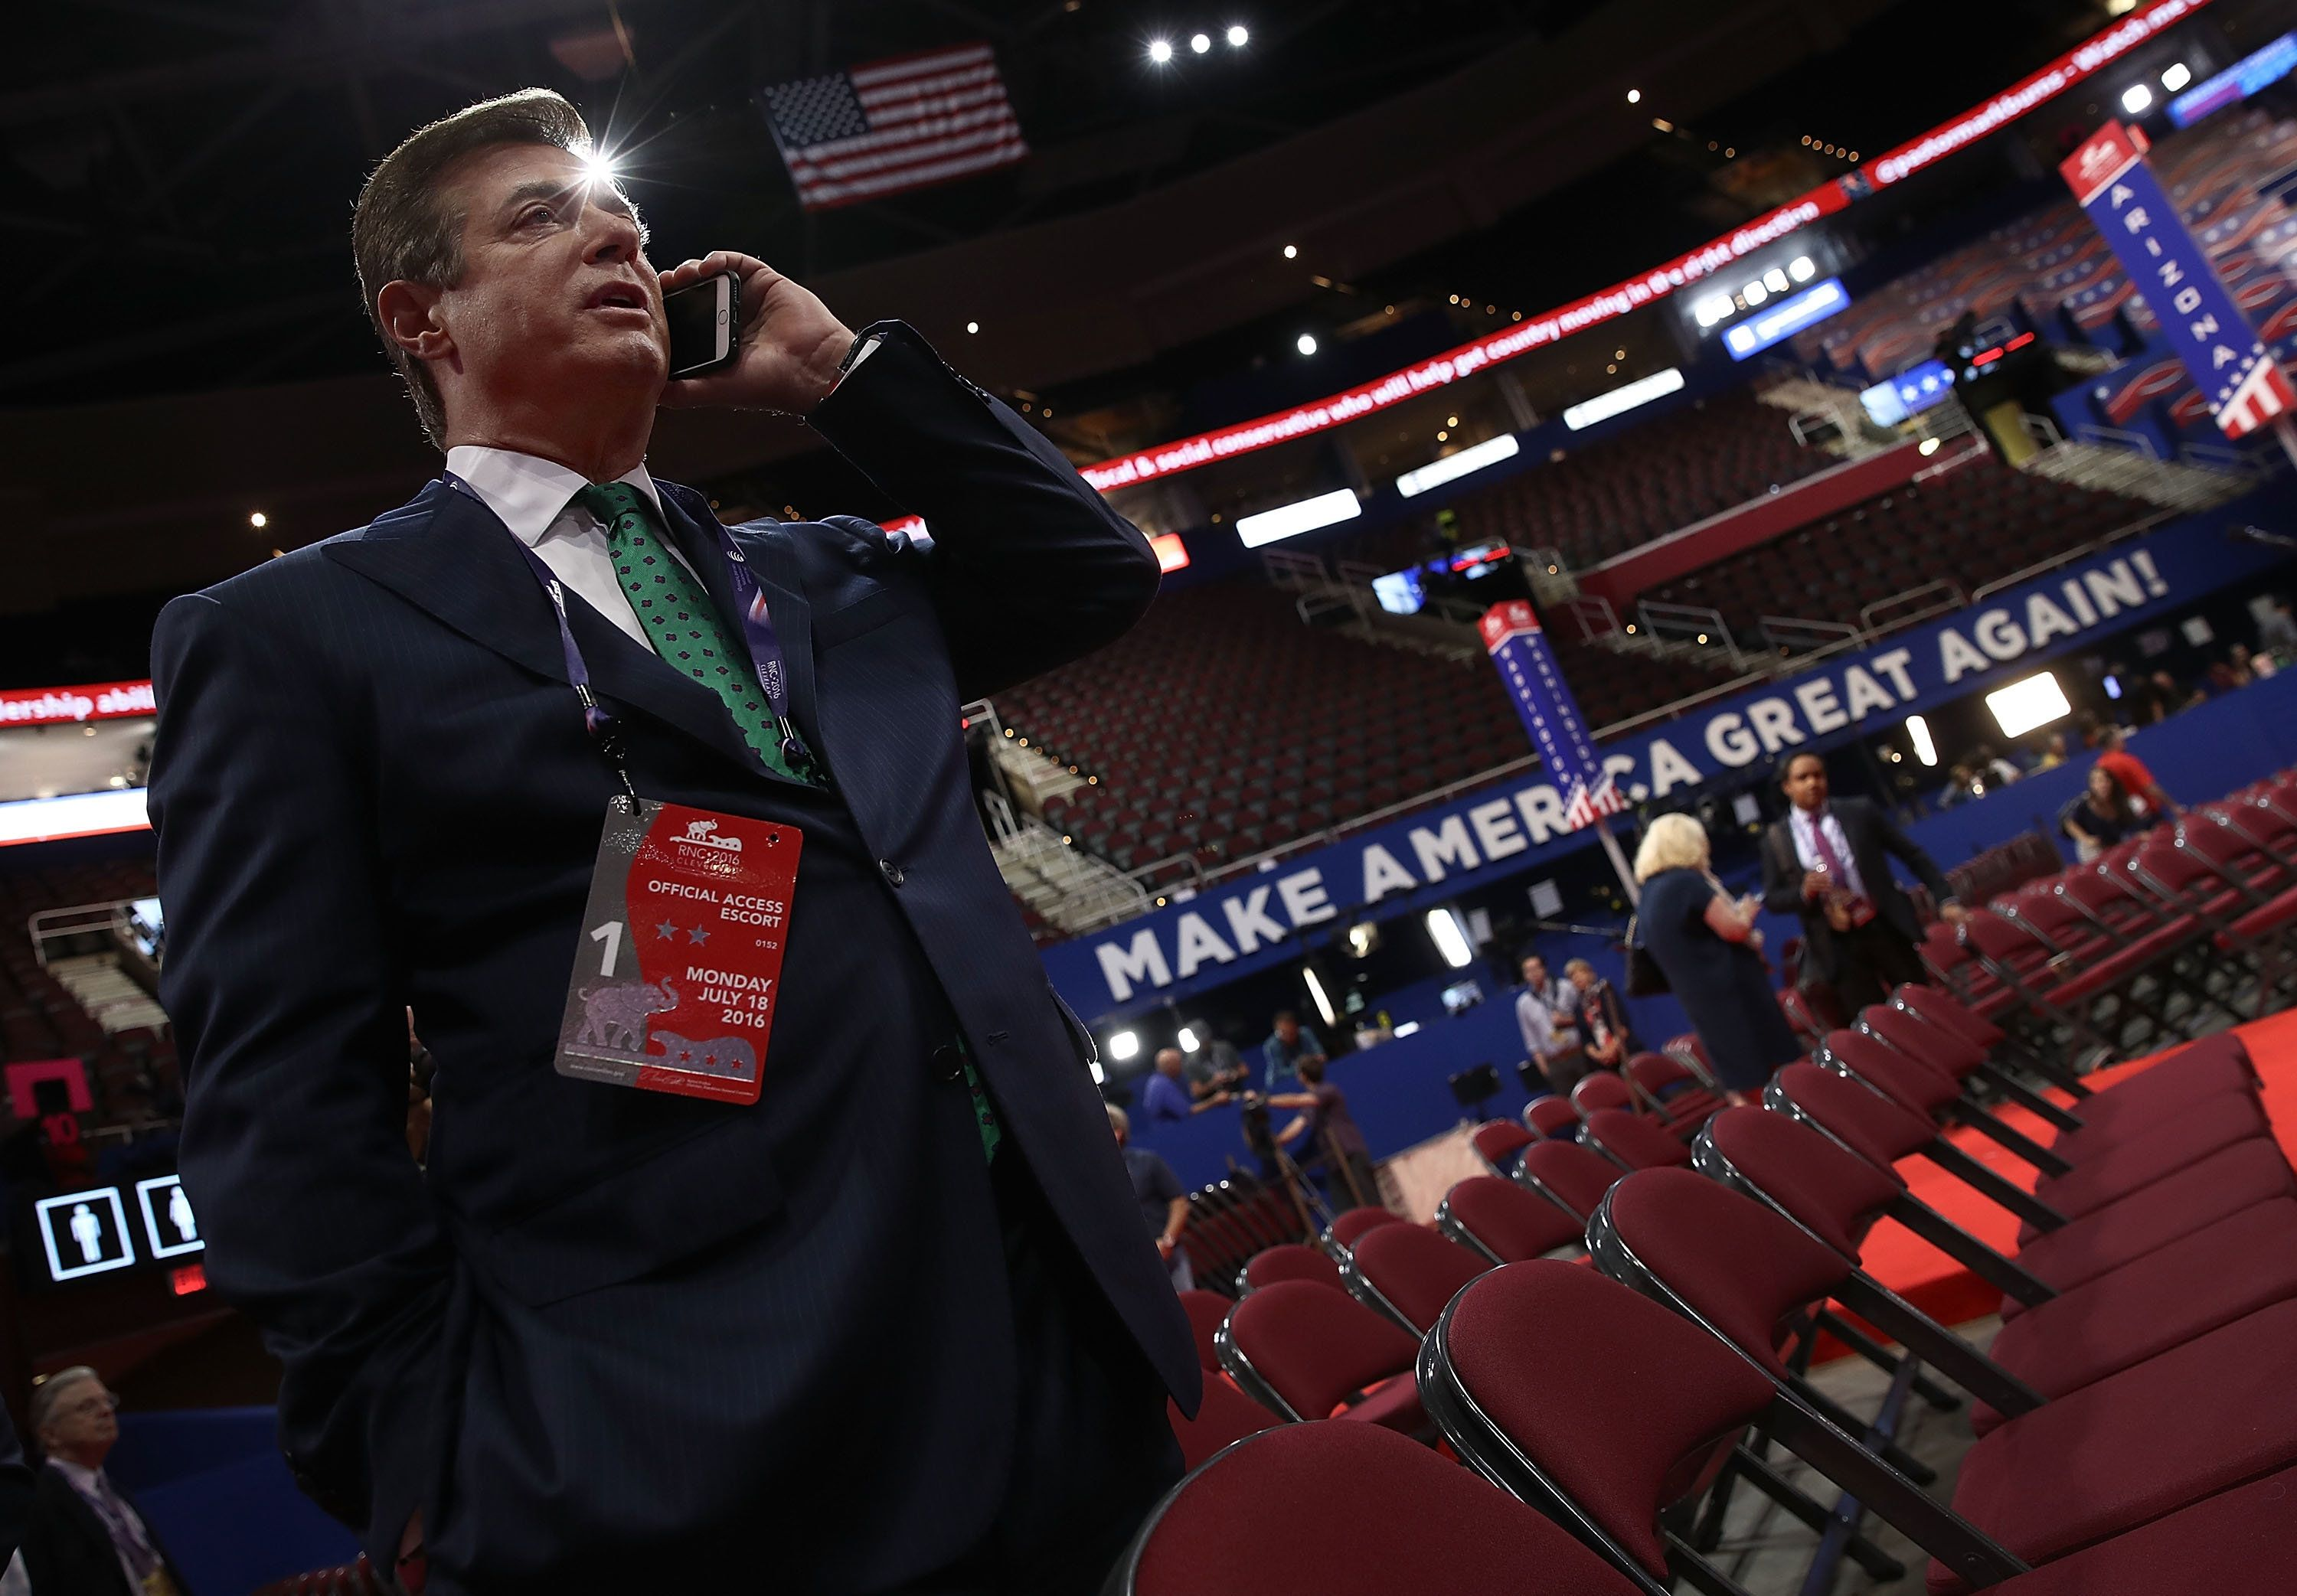 Paul Manafort Reaches Tentative Plea Deal With Robert Mueller's Team: Reports